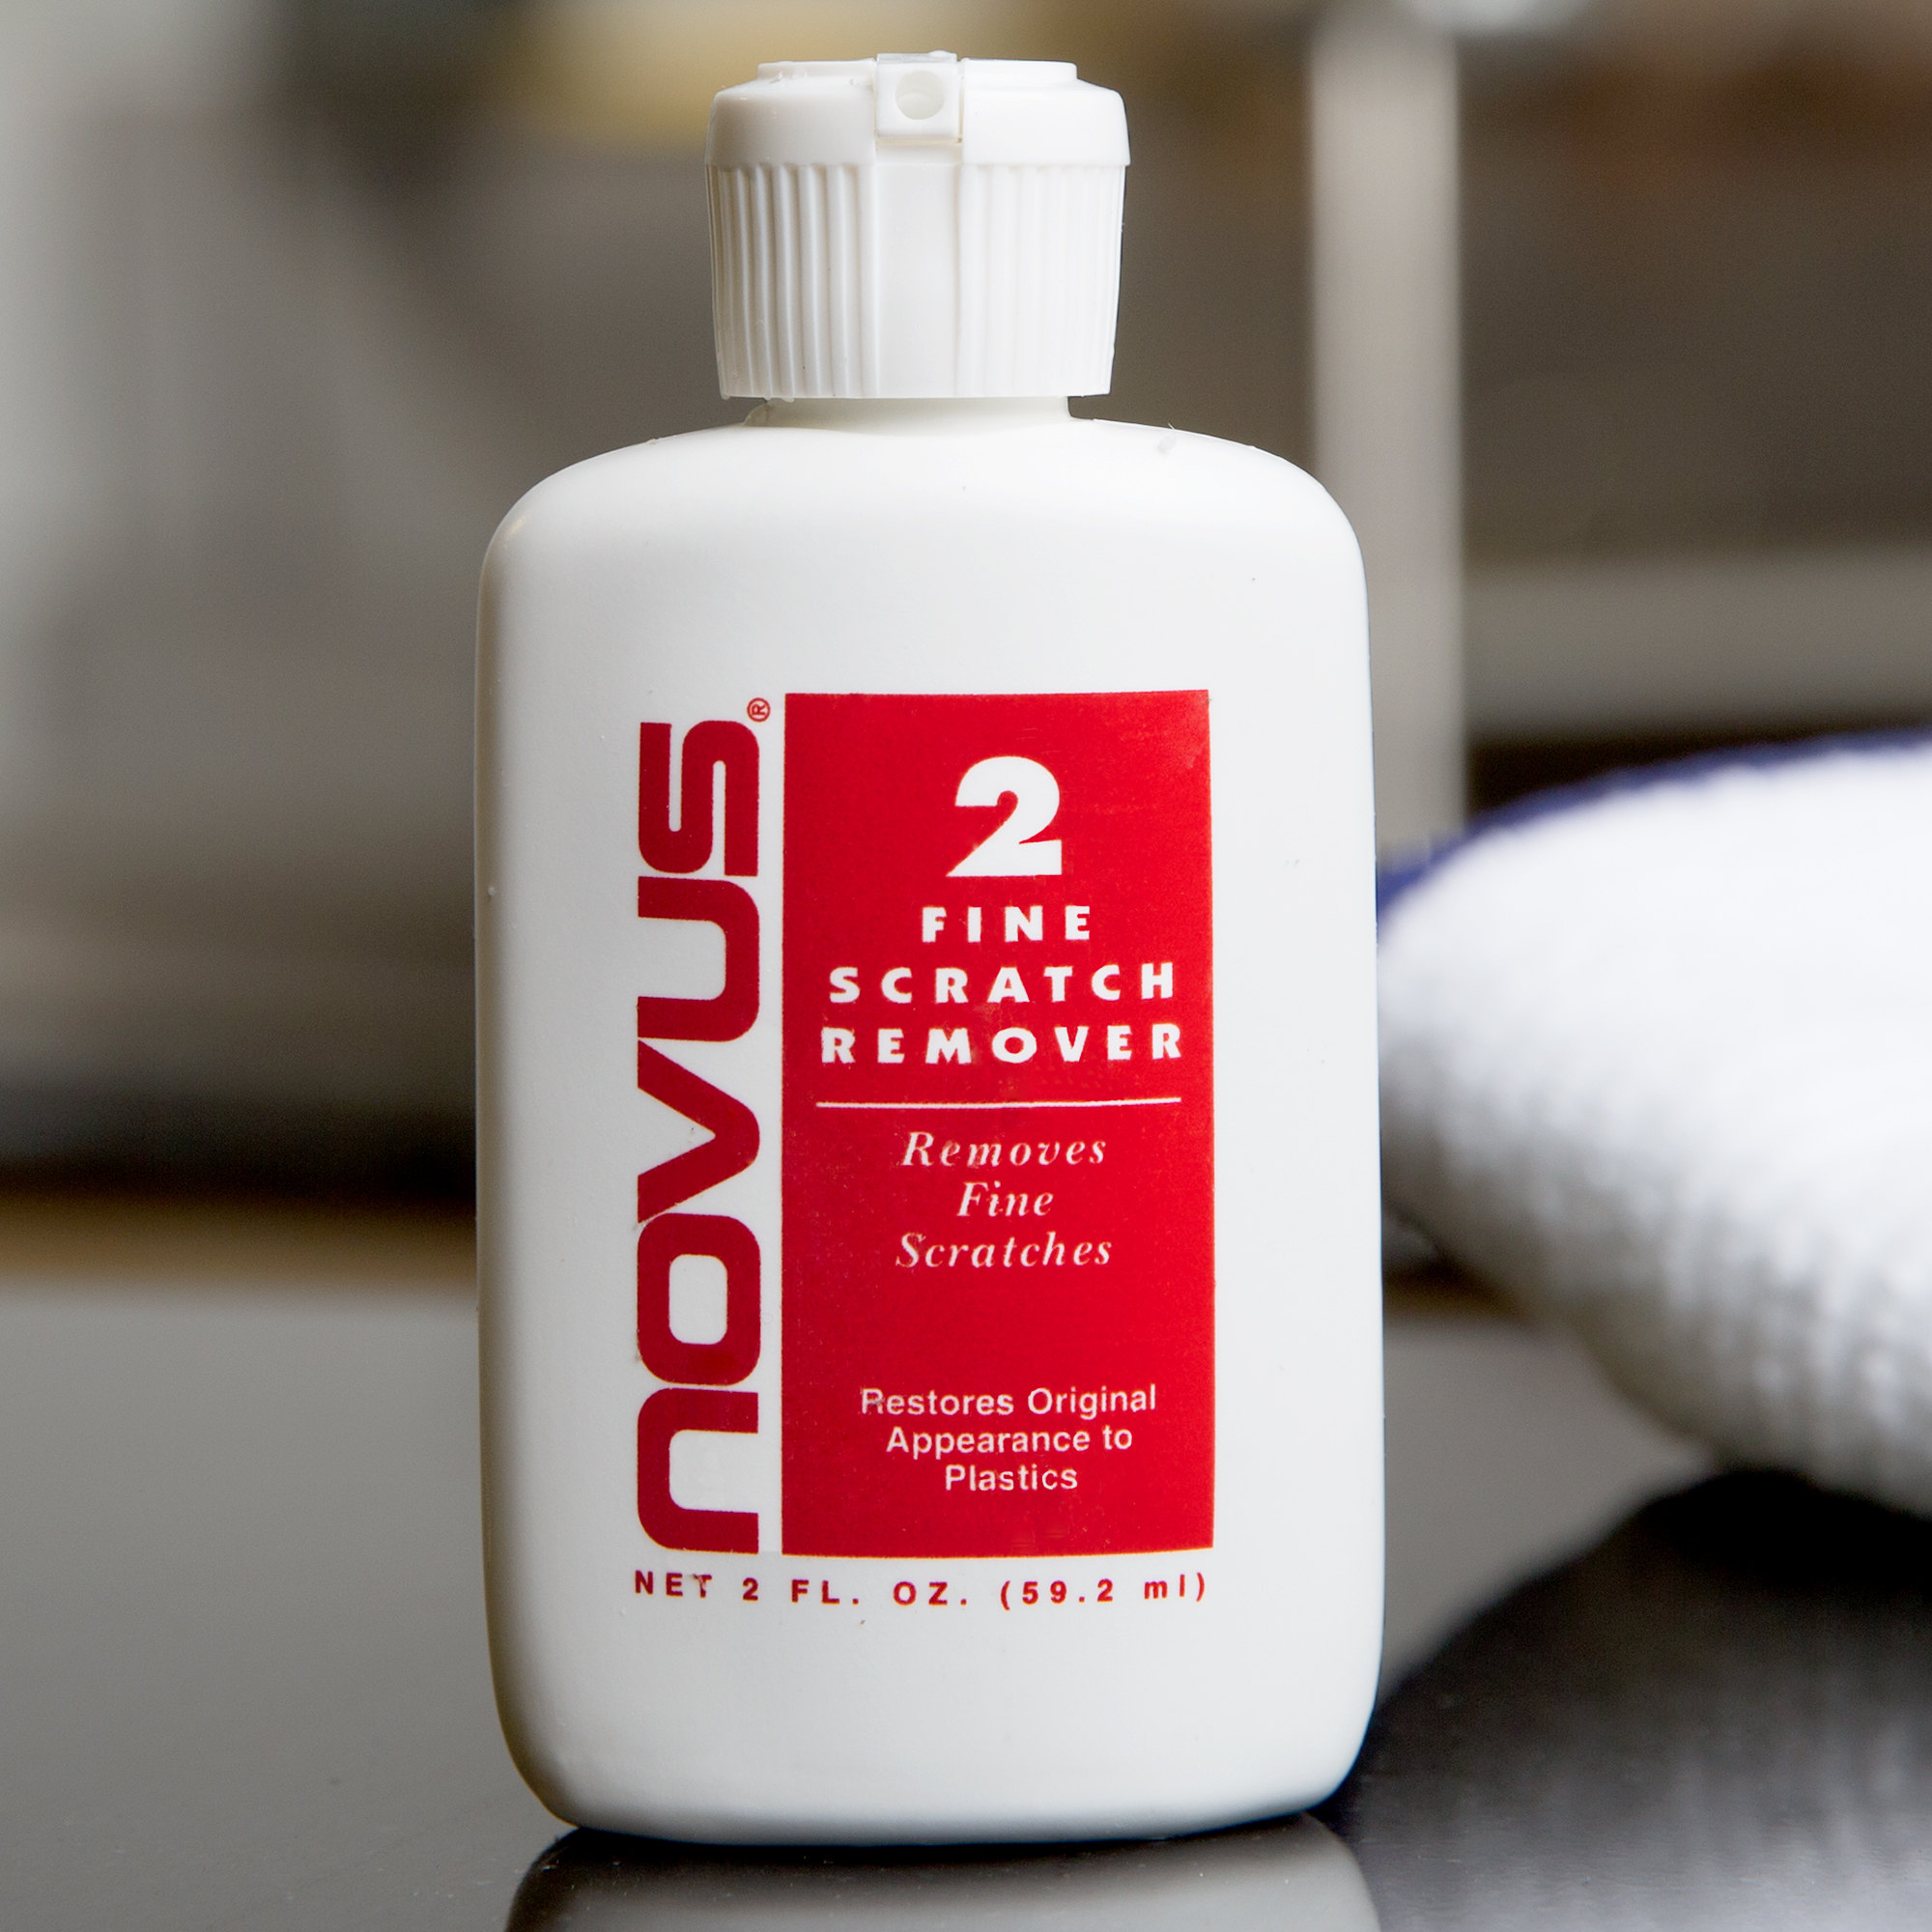 Remove Fine Scratches Haziness And Abrasions From Most Plastic Acrylic Surfaces With Novus Pn 7030 8 Oz Polish 2 Scratch Remover